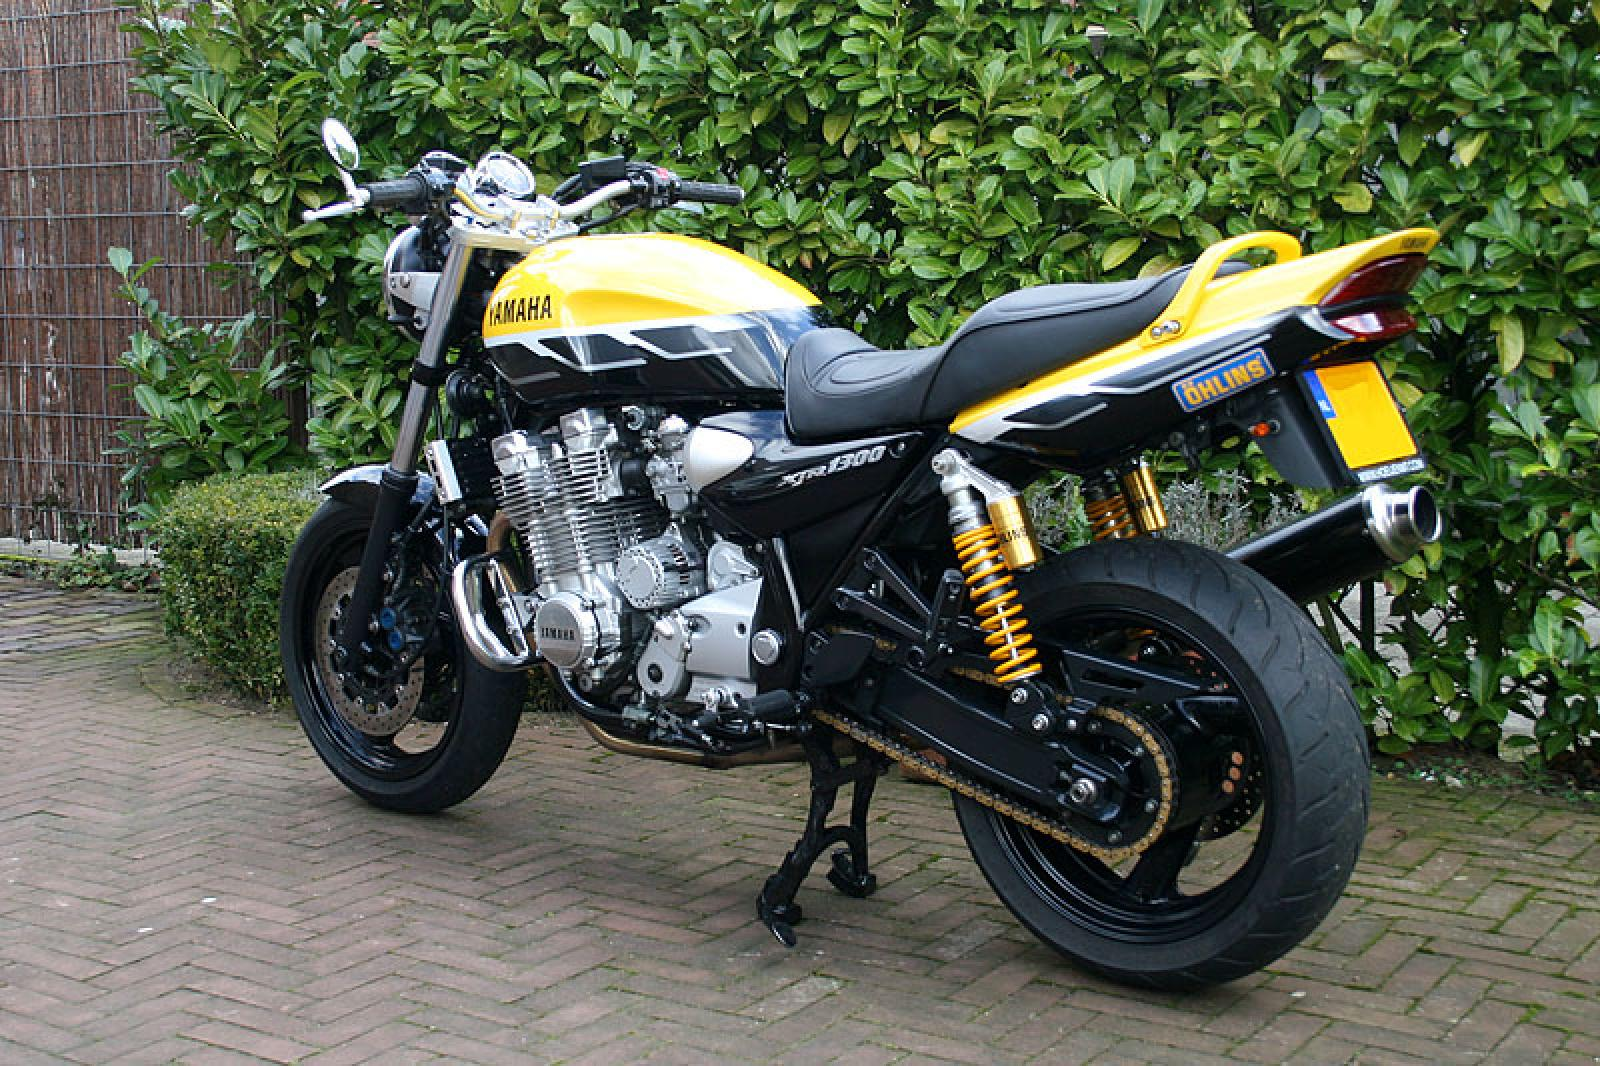 2001 yamaha xjr 1300 sp moto zombdrive com. Black Bedroom Furniture Sets. Home Design Ideas